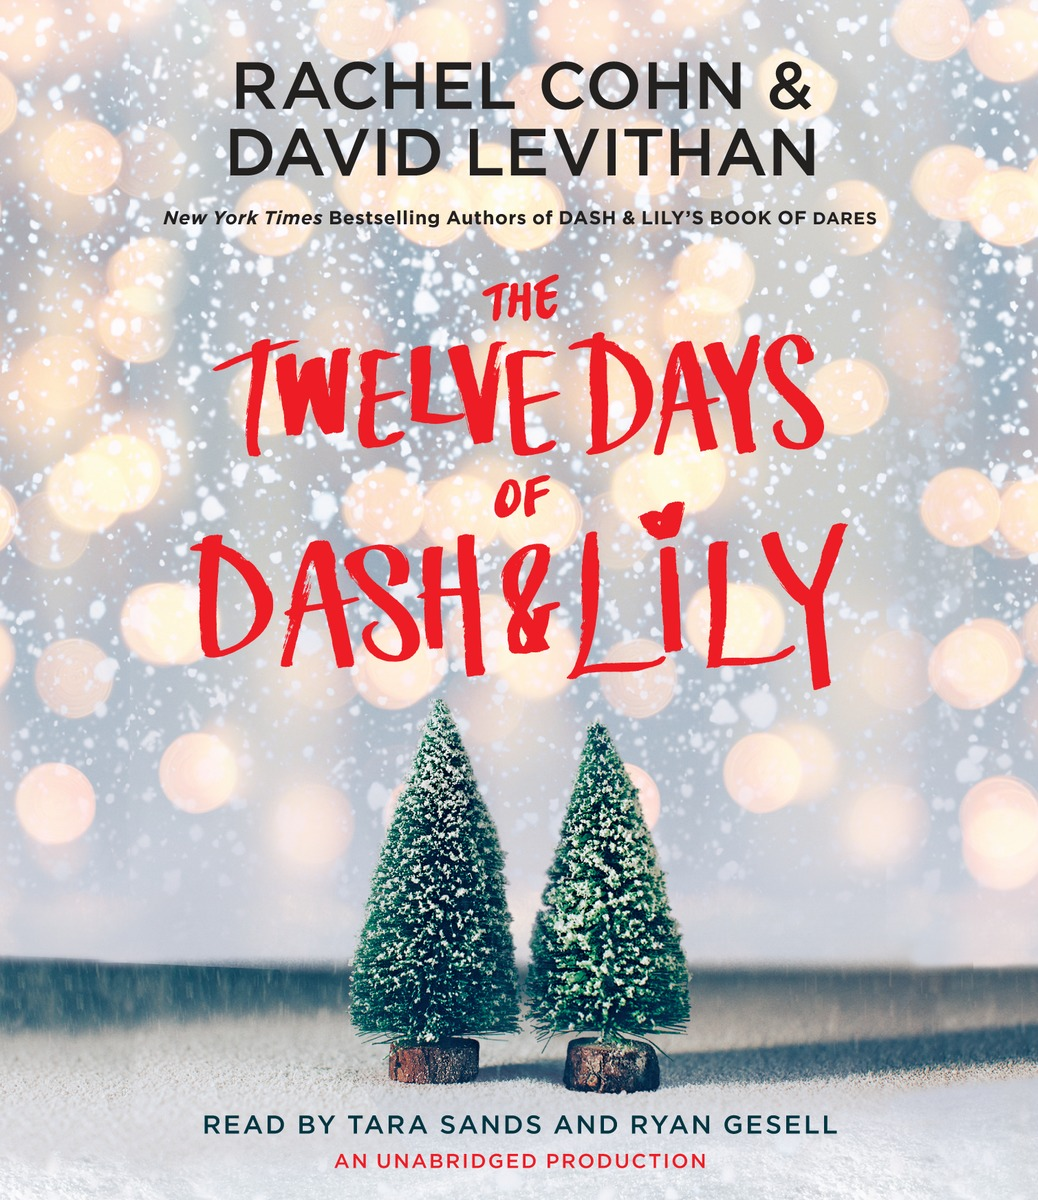 The Twelve Days of Dash & Lily miguel delatorre a a lily among the thorns imagining a new christian sexuality